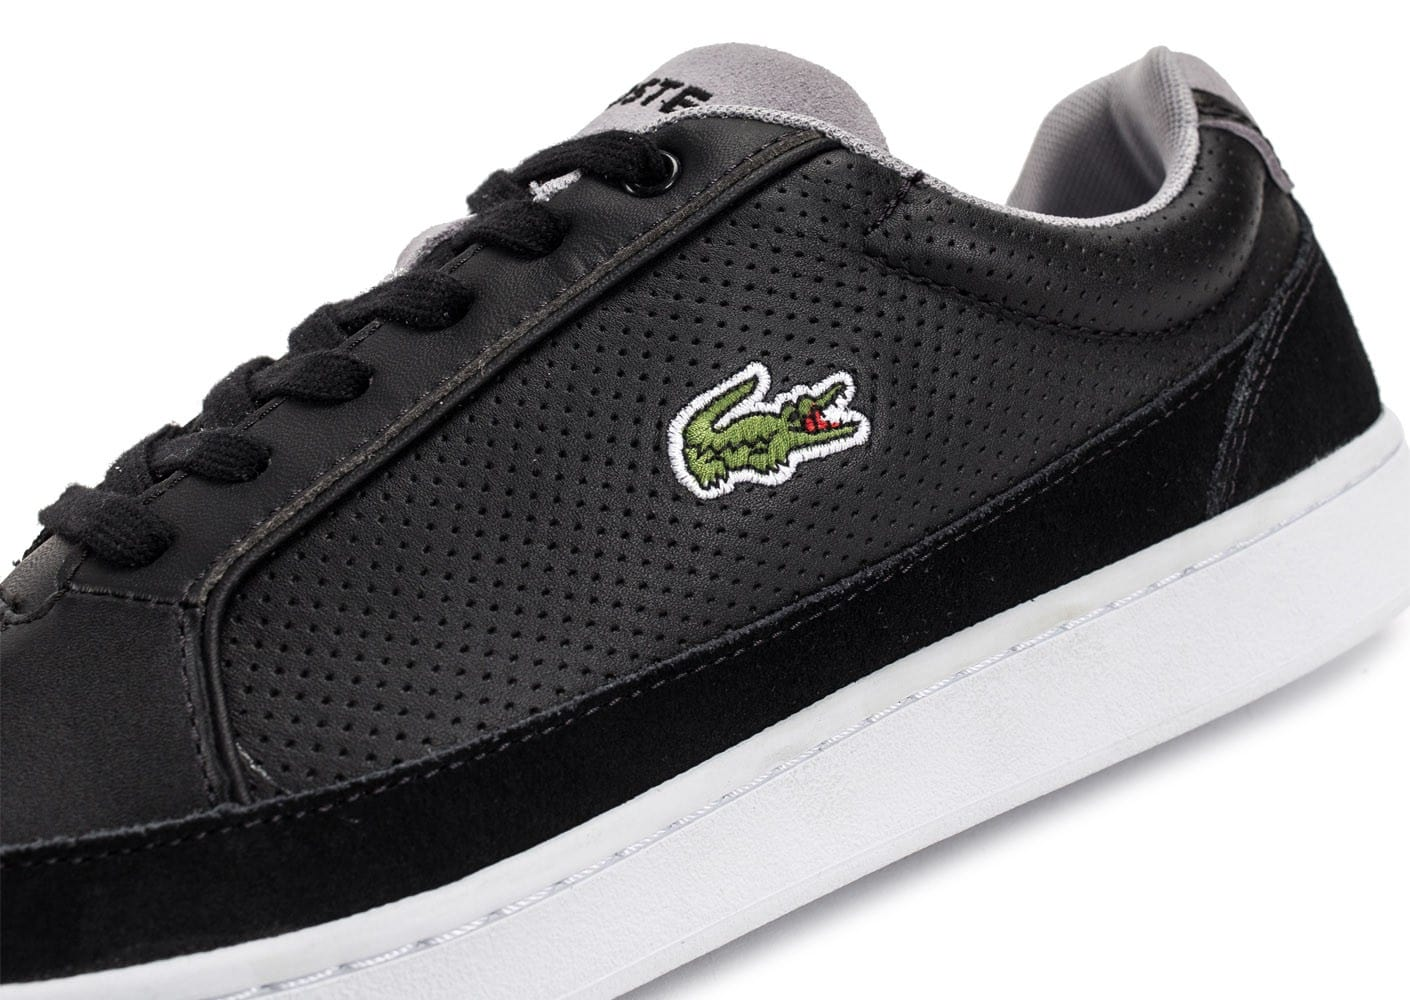 Noire Baskets 117 Lacoste Setplay Homme Chaussures On8n0kpwx Chausport Ibf7mg6yvY